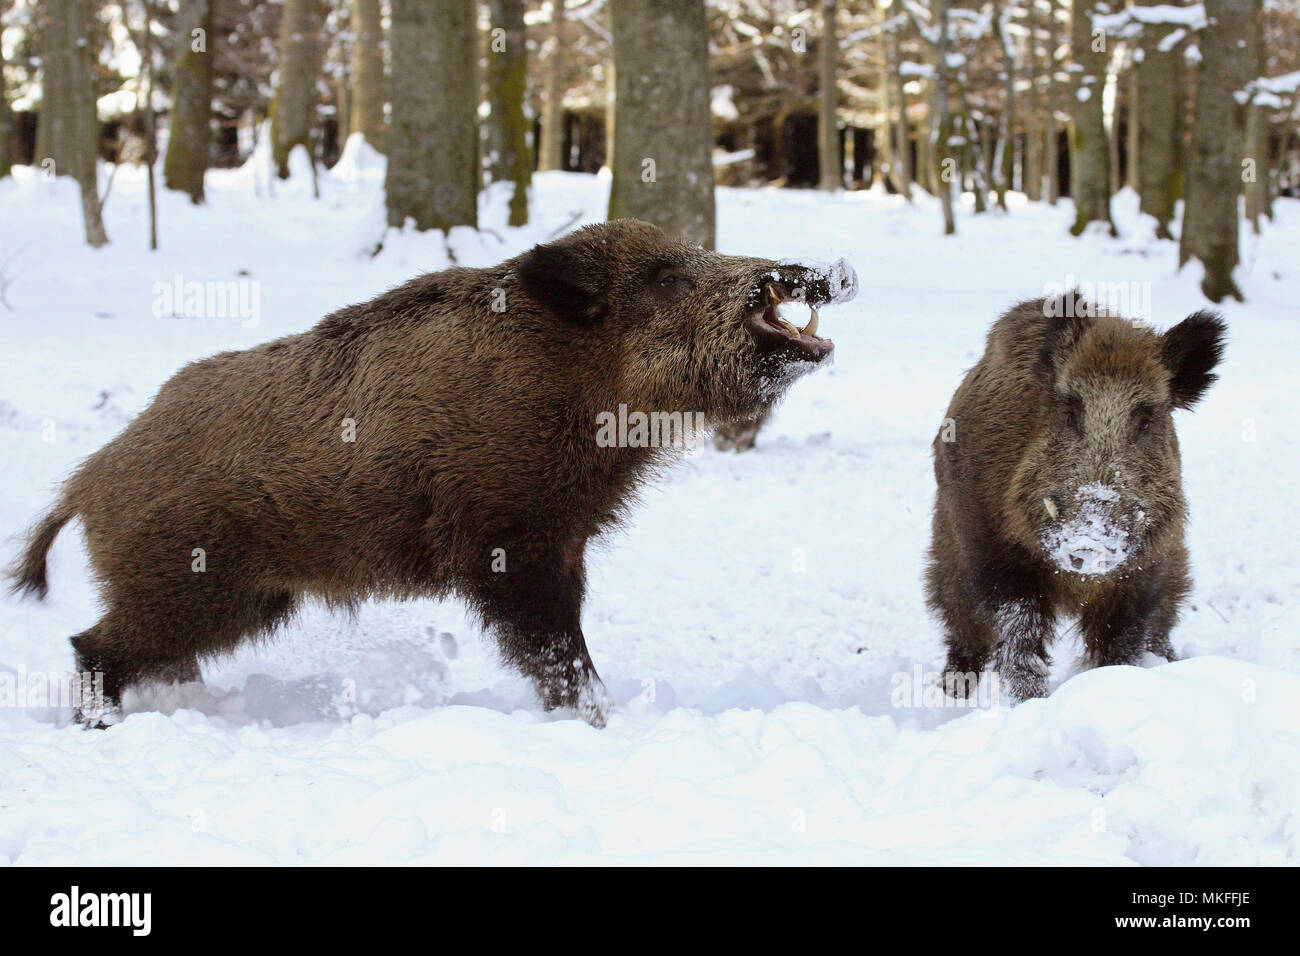 Wild boars (Sus scrofa) in a snowy undergrowth, Ardennes, Belgium - Stock Image